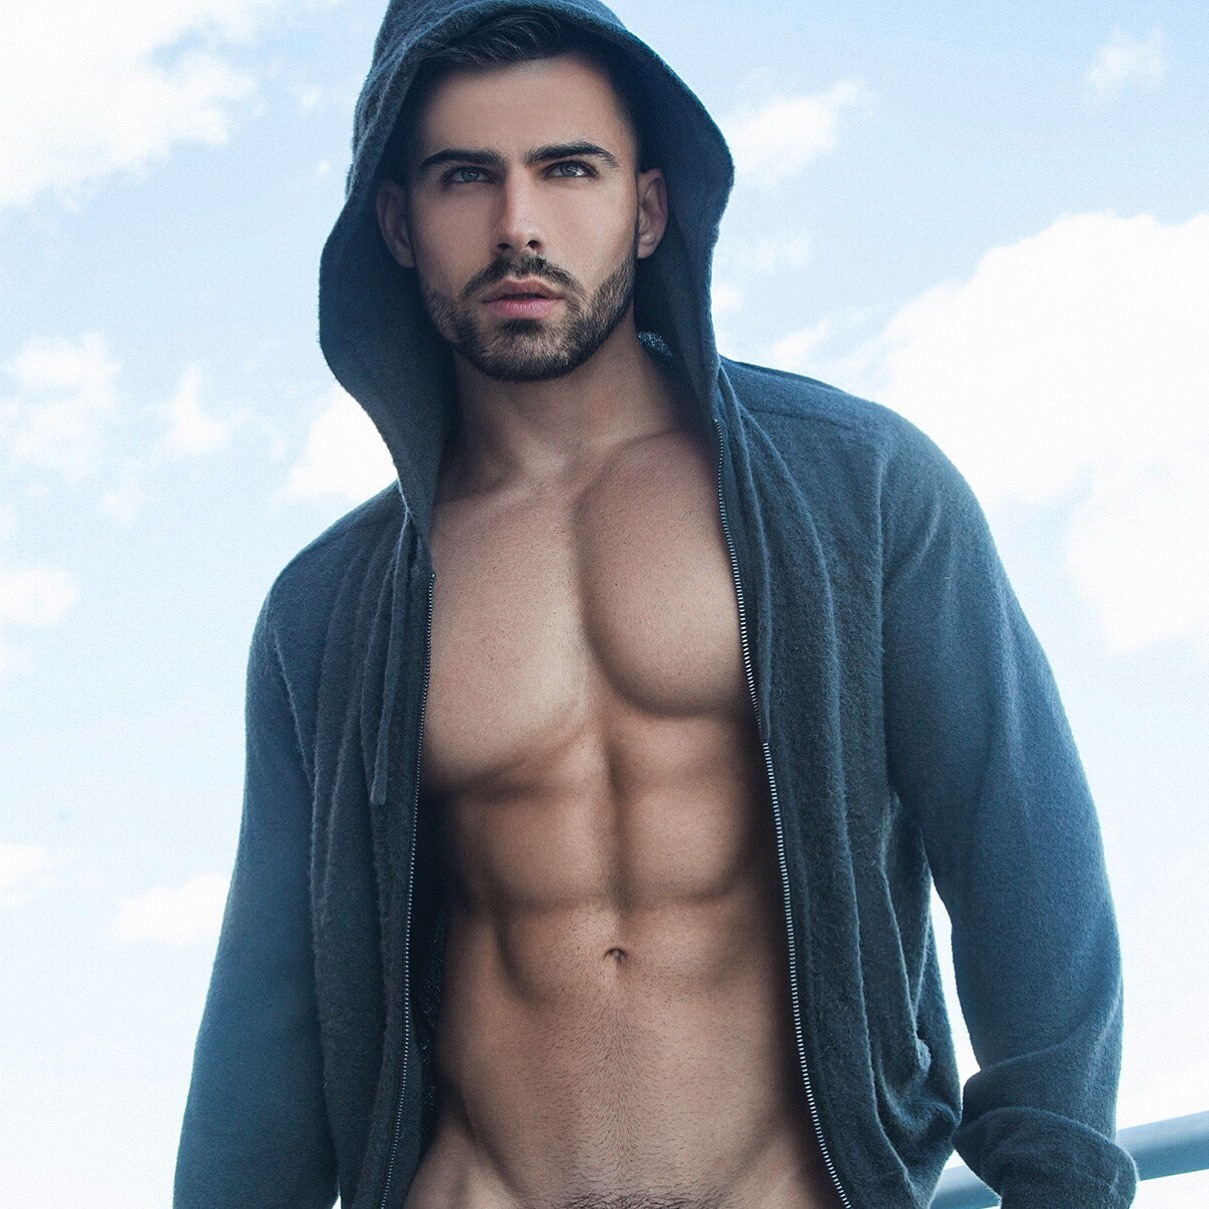 Roman Khodorov by Rick Day